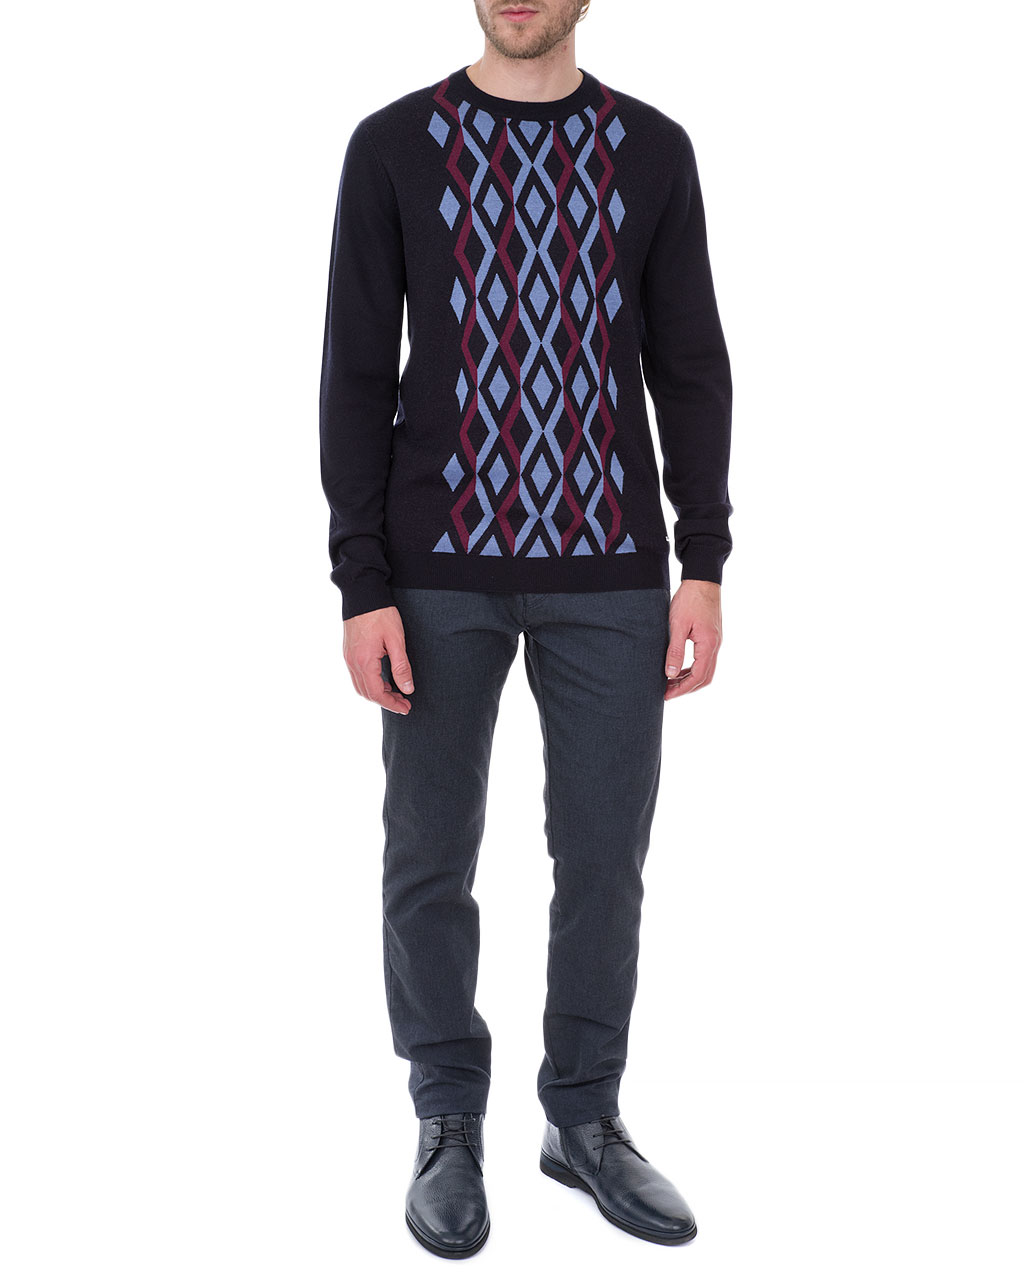 Men's jumper 1855-319/19-20 (2)